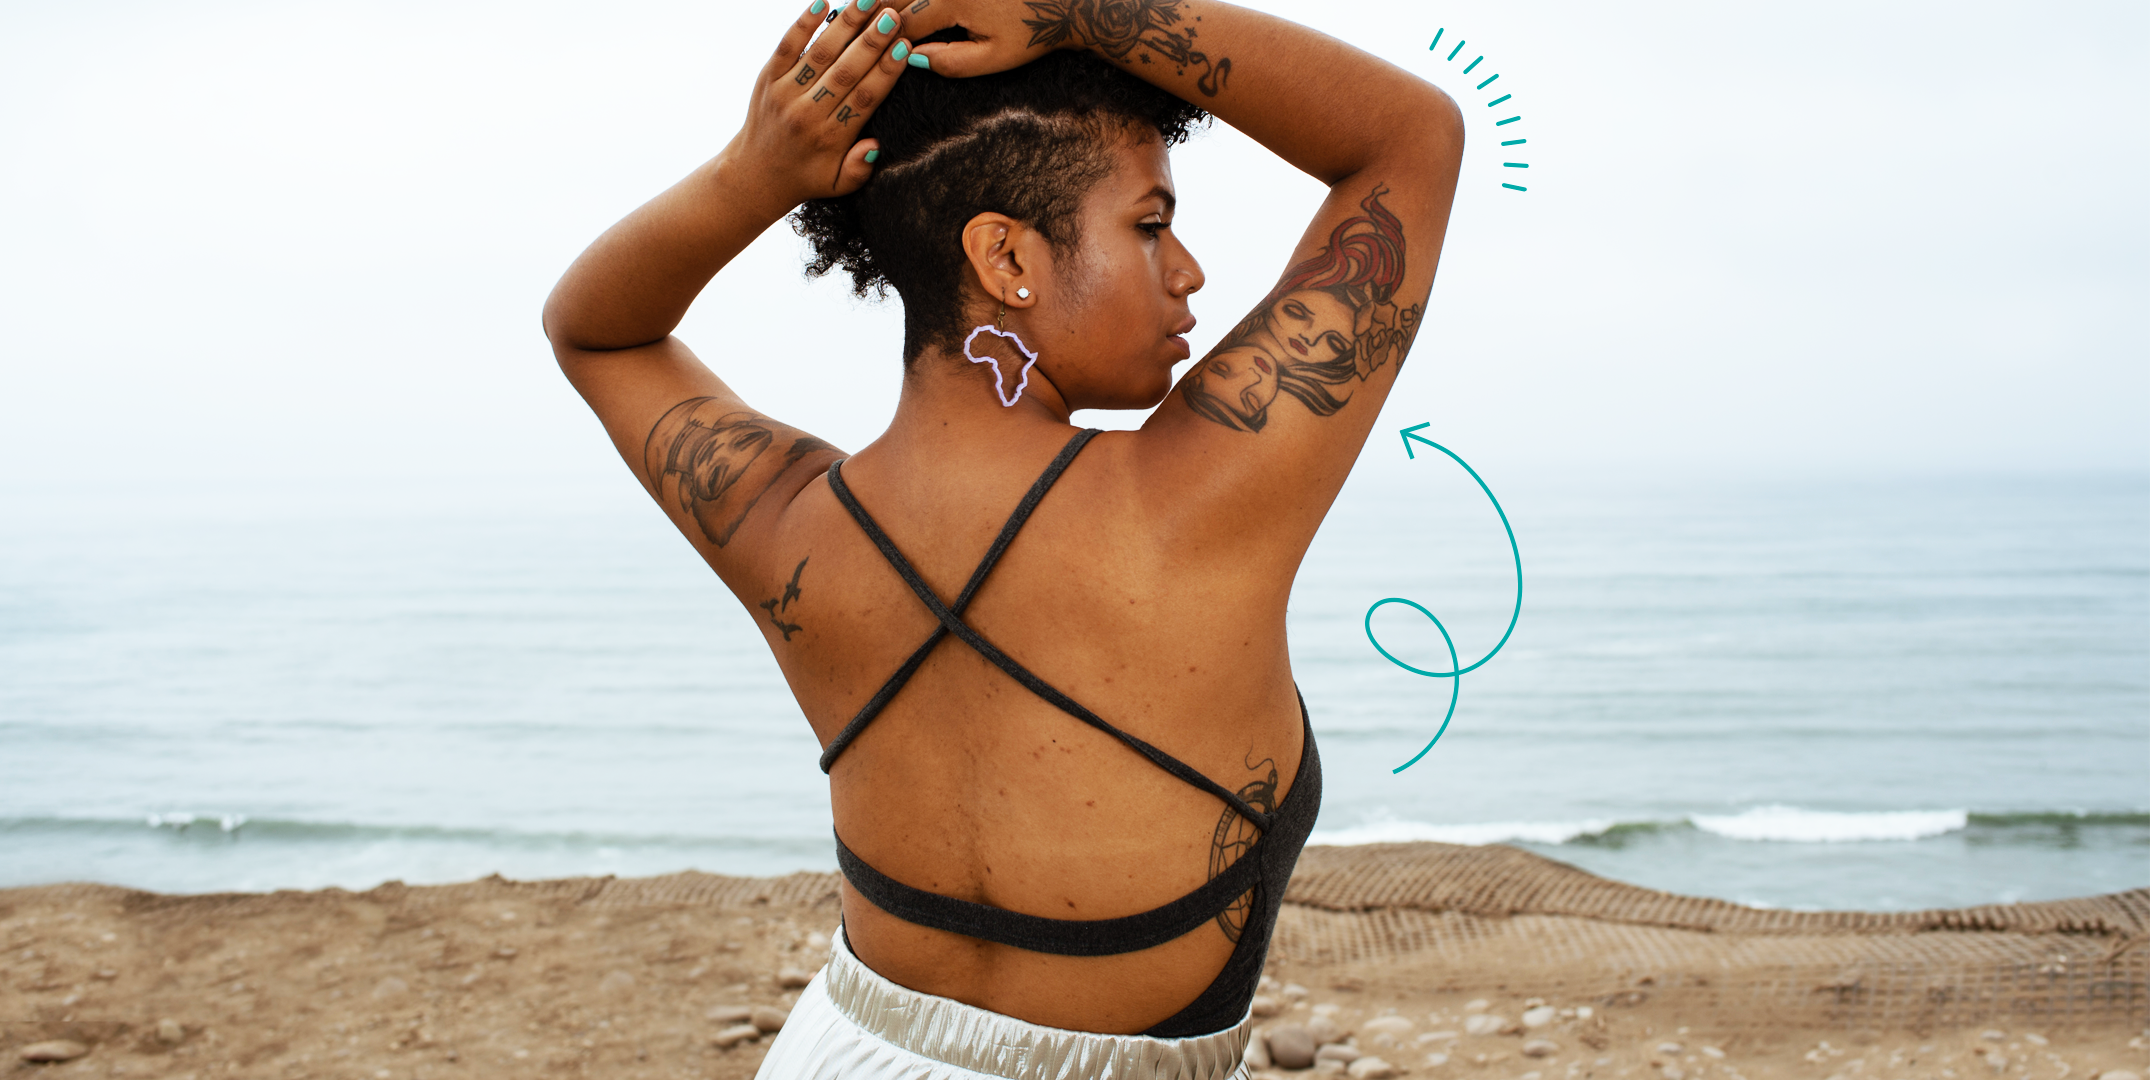 Tattoos For Dark Skin What To Know According To Artists And Experts